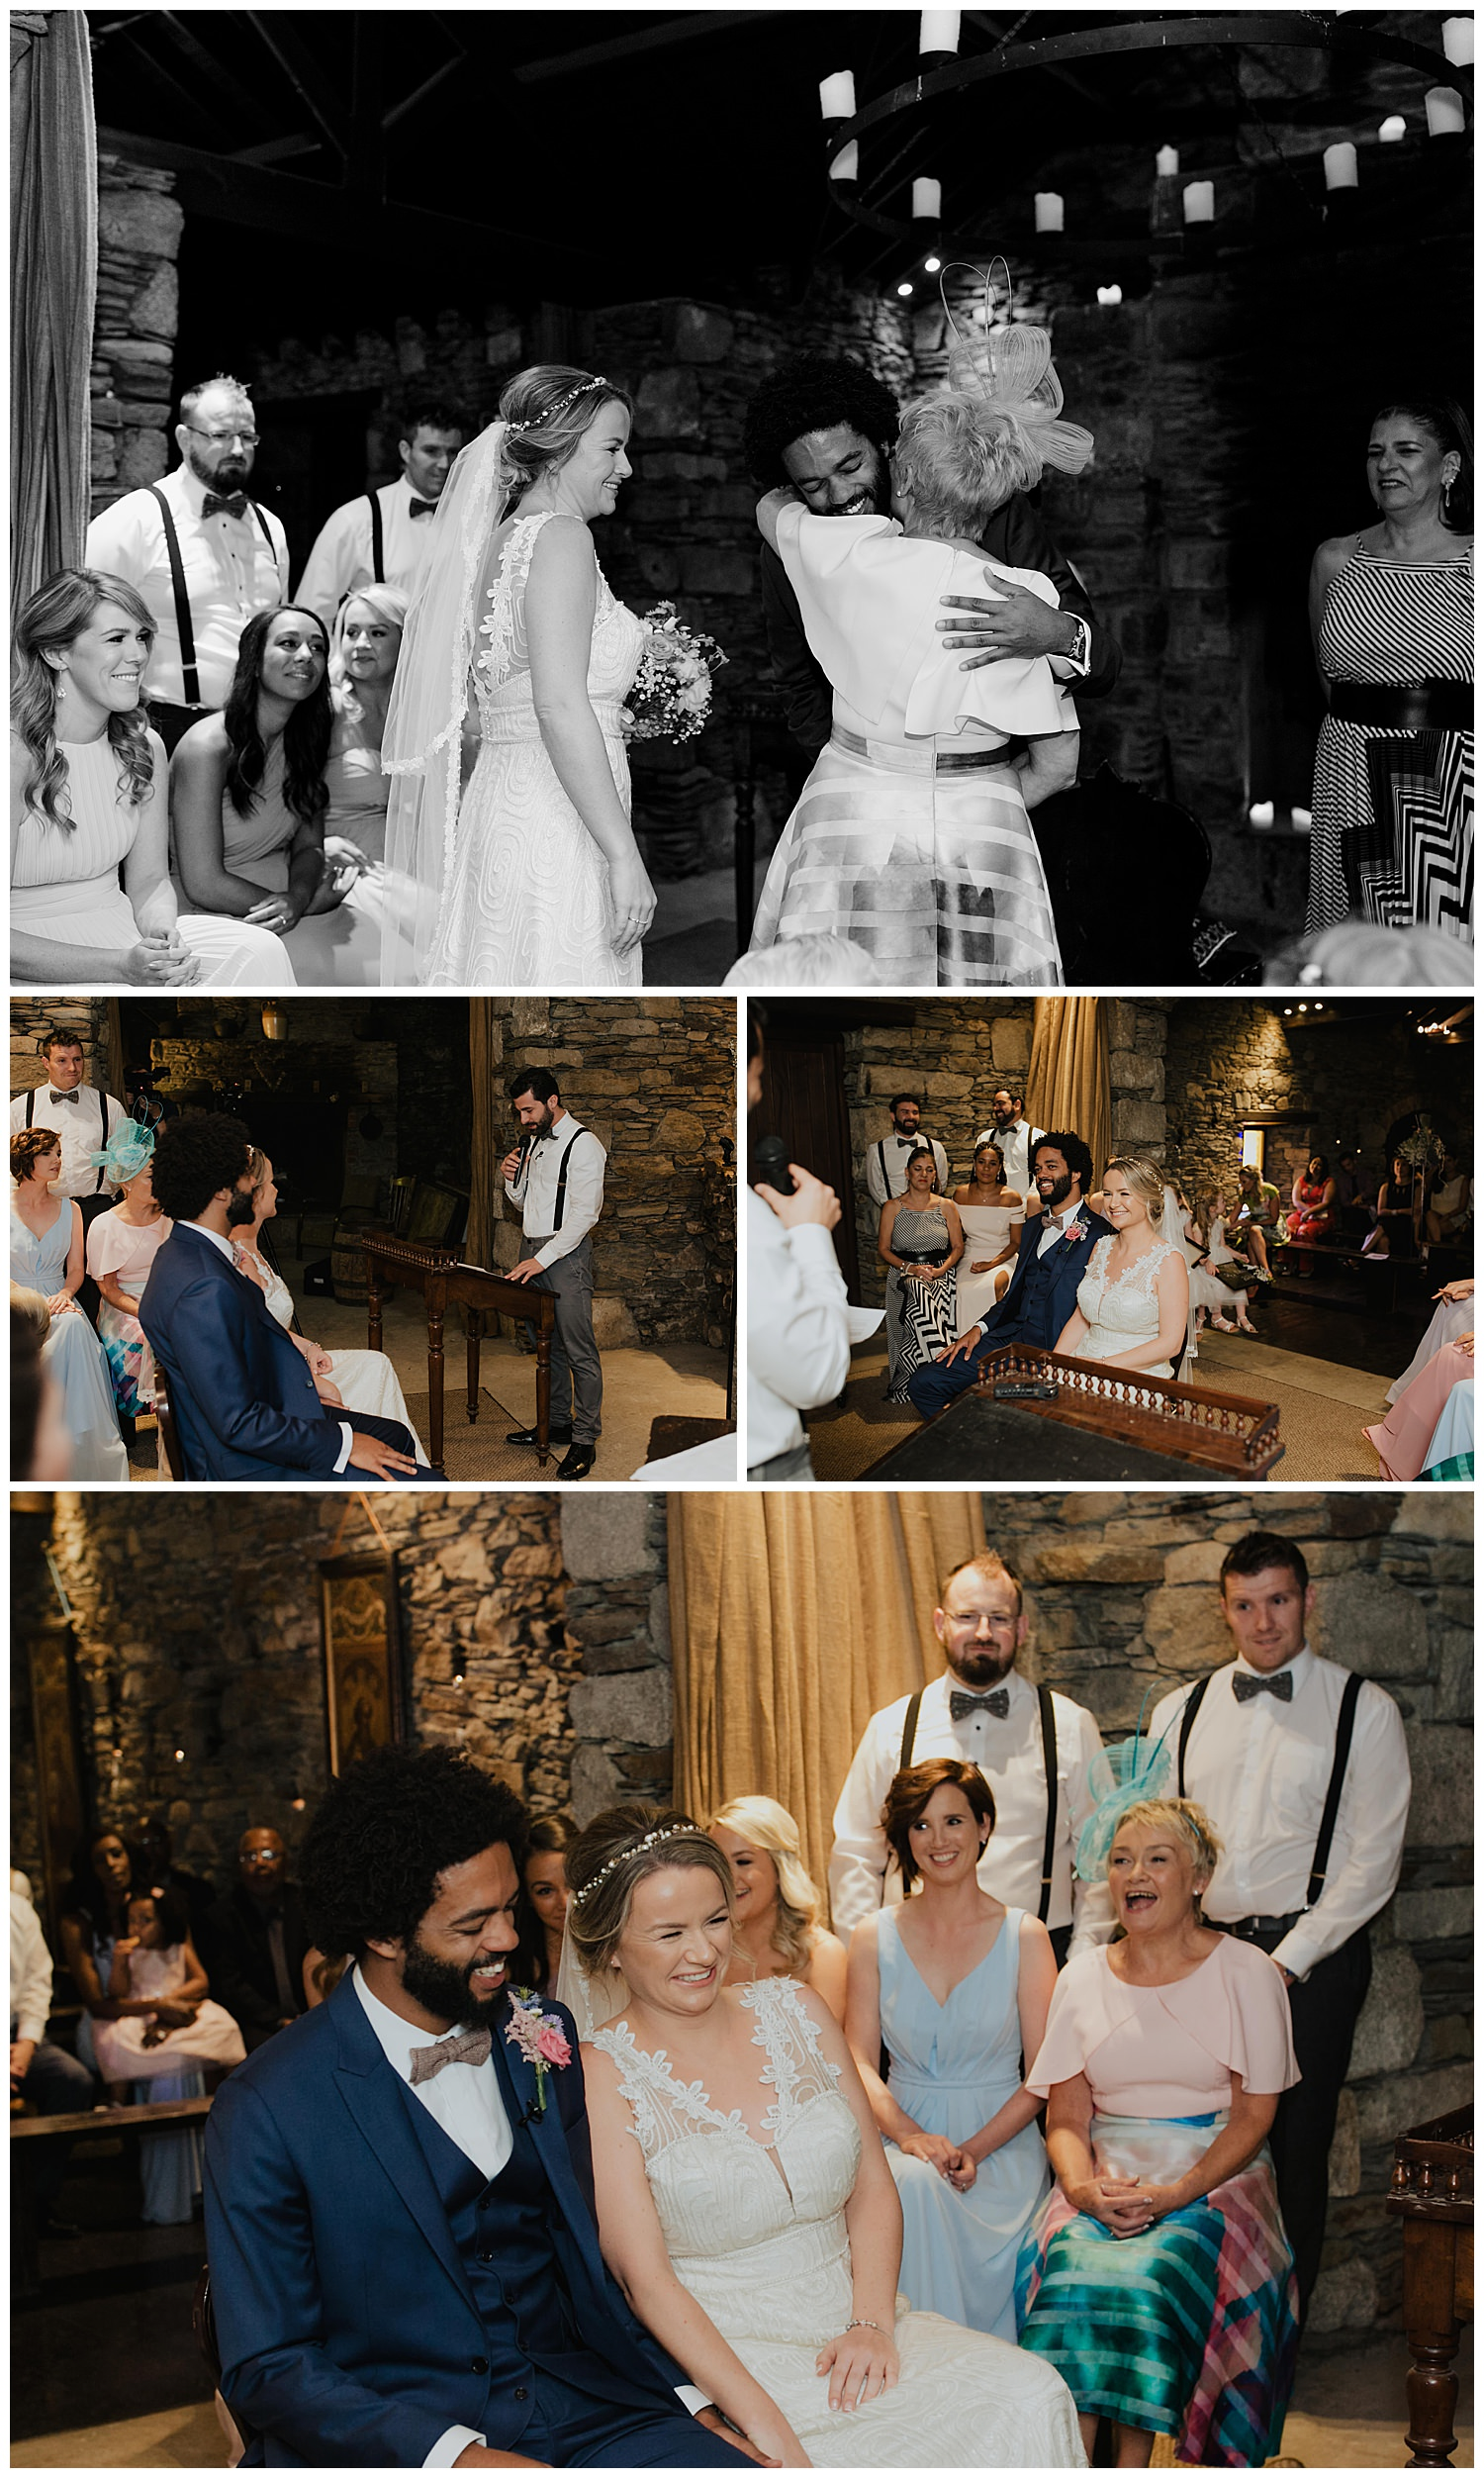 j&r_ballybeg_house_wedding_photographer_livia_figueiredo_238.jpg